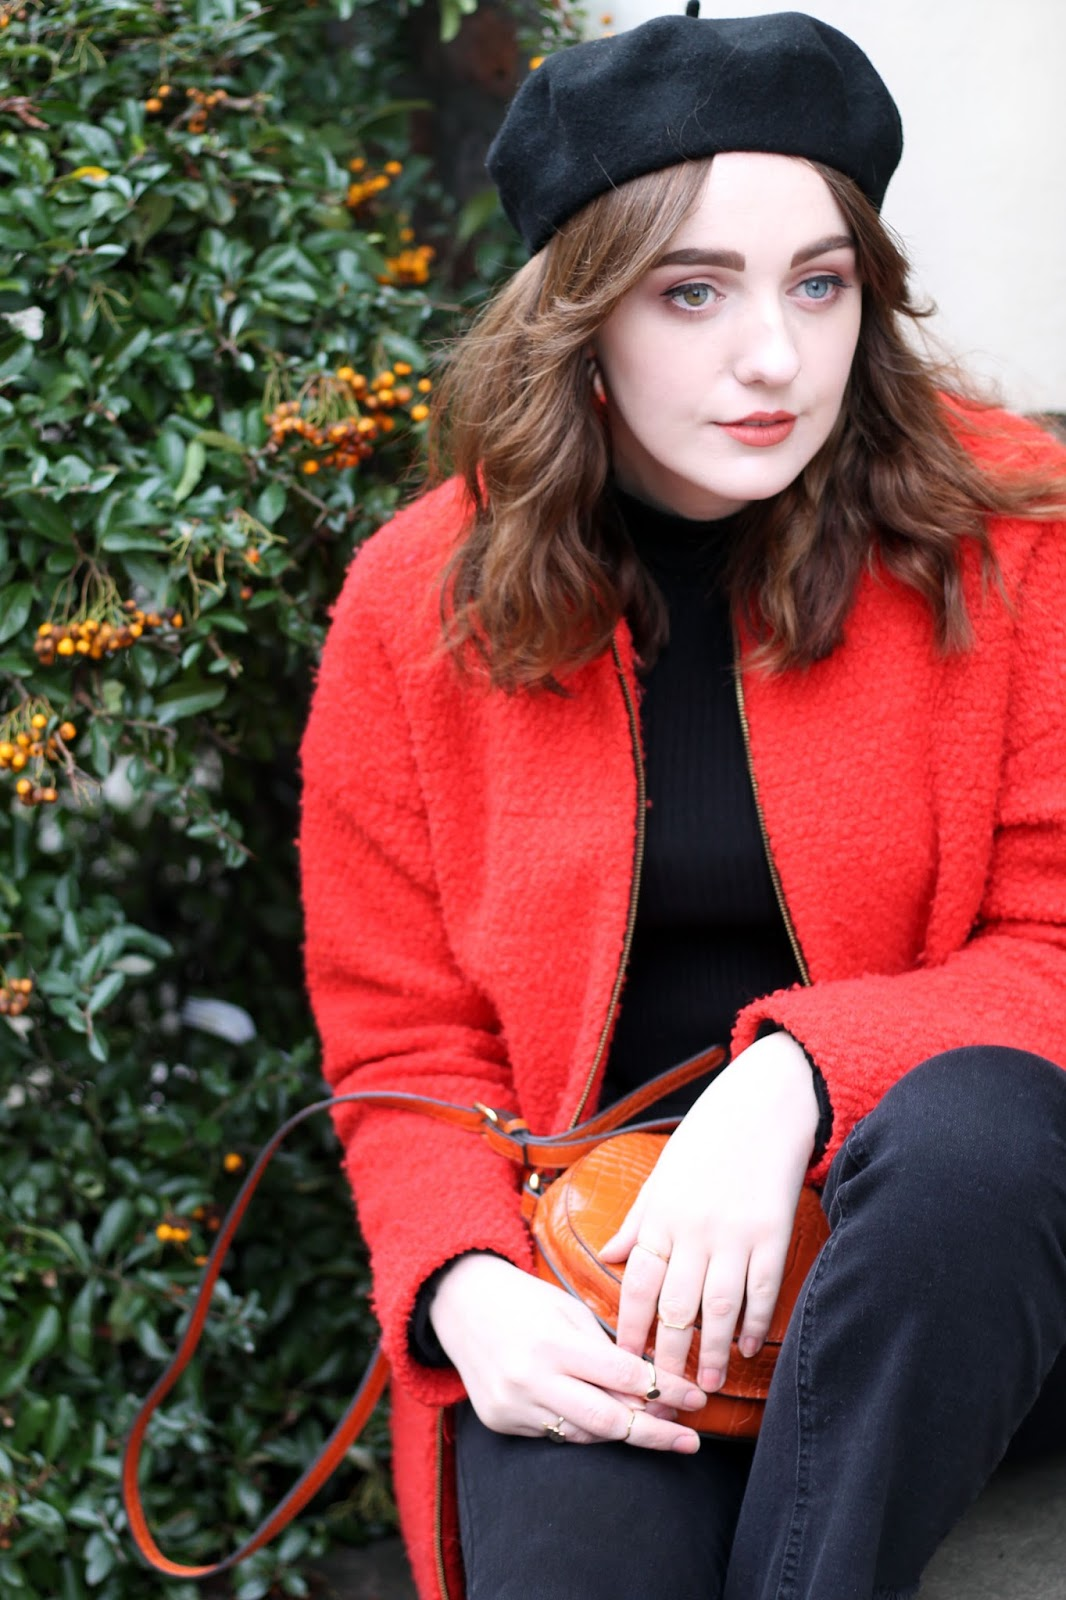 UK style blogger models black beret, blood orange coat, orange round bag and black jeans